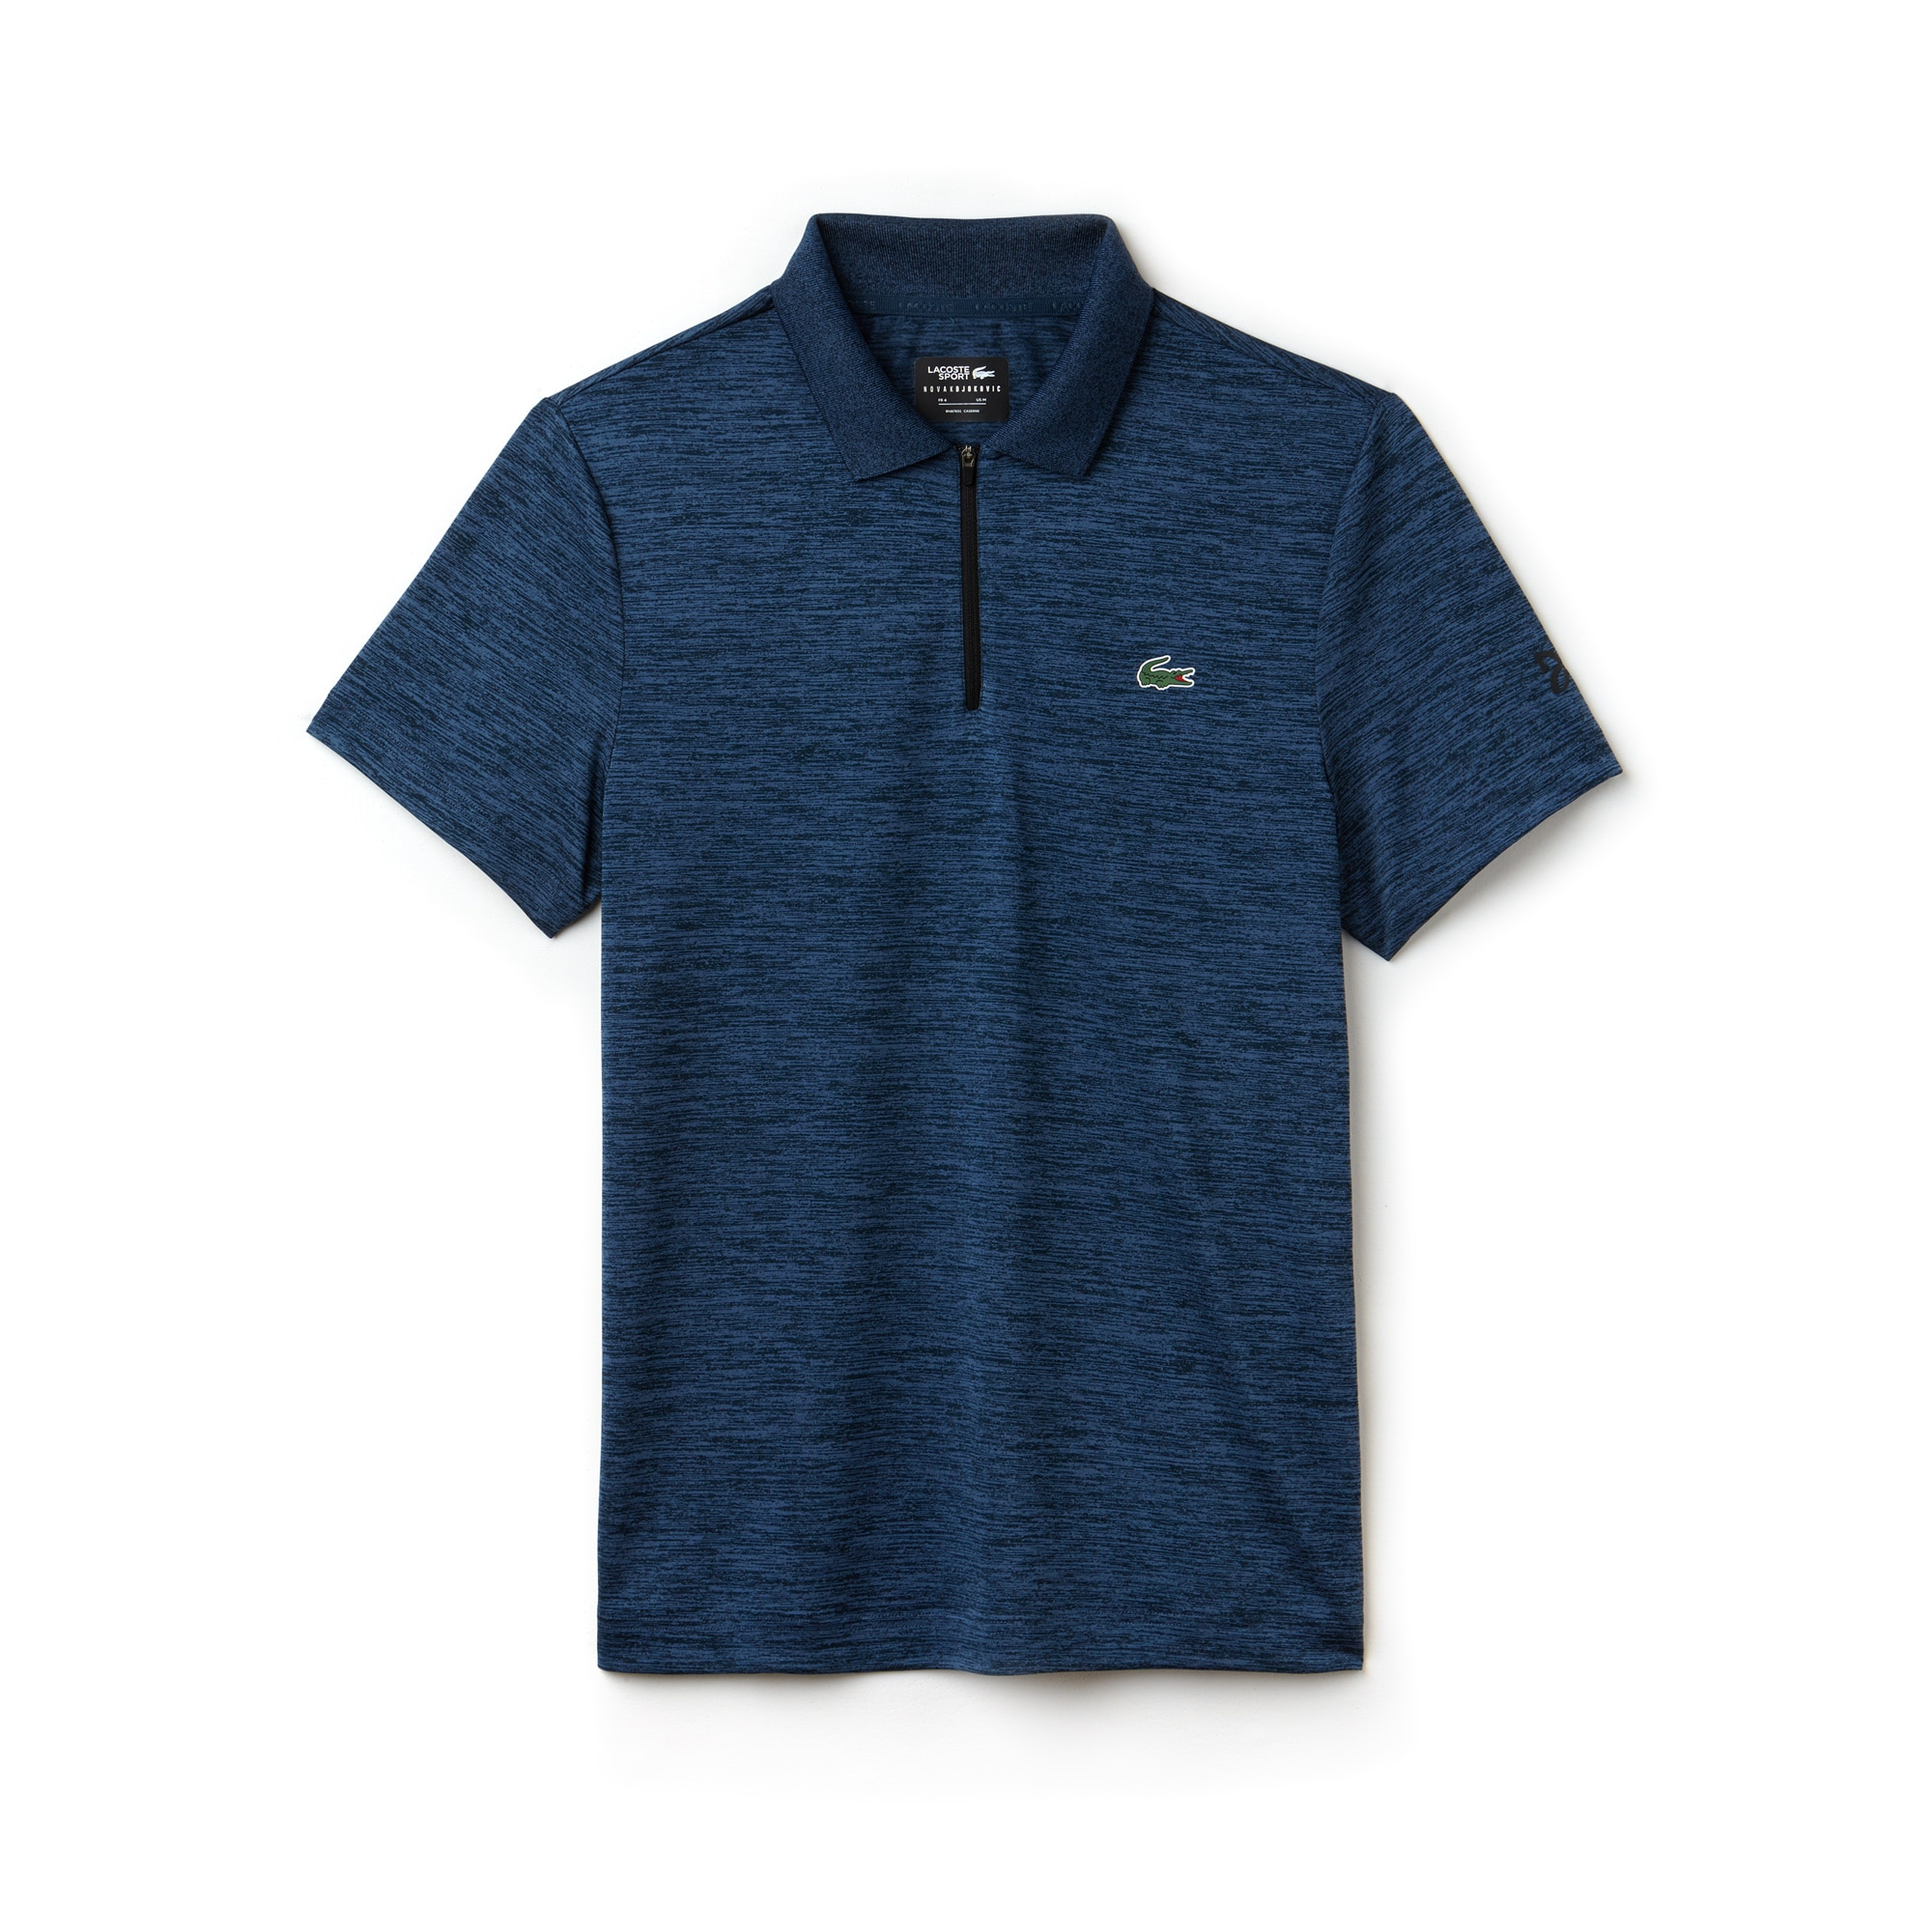 Polo De Hombre Lacoste SPORT Novak Djokovic-Off Court Collection En Tejido De Punto Técnico Jaspeado